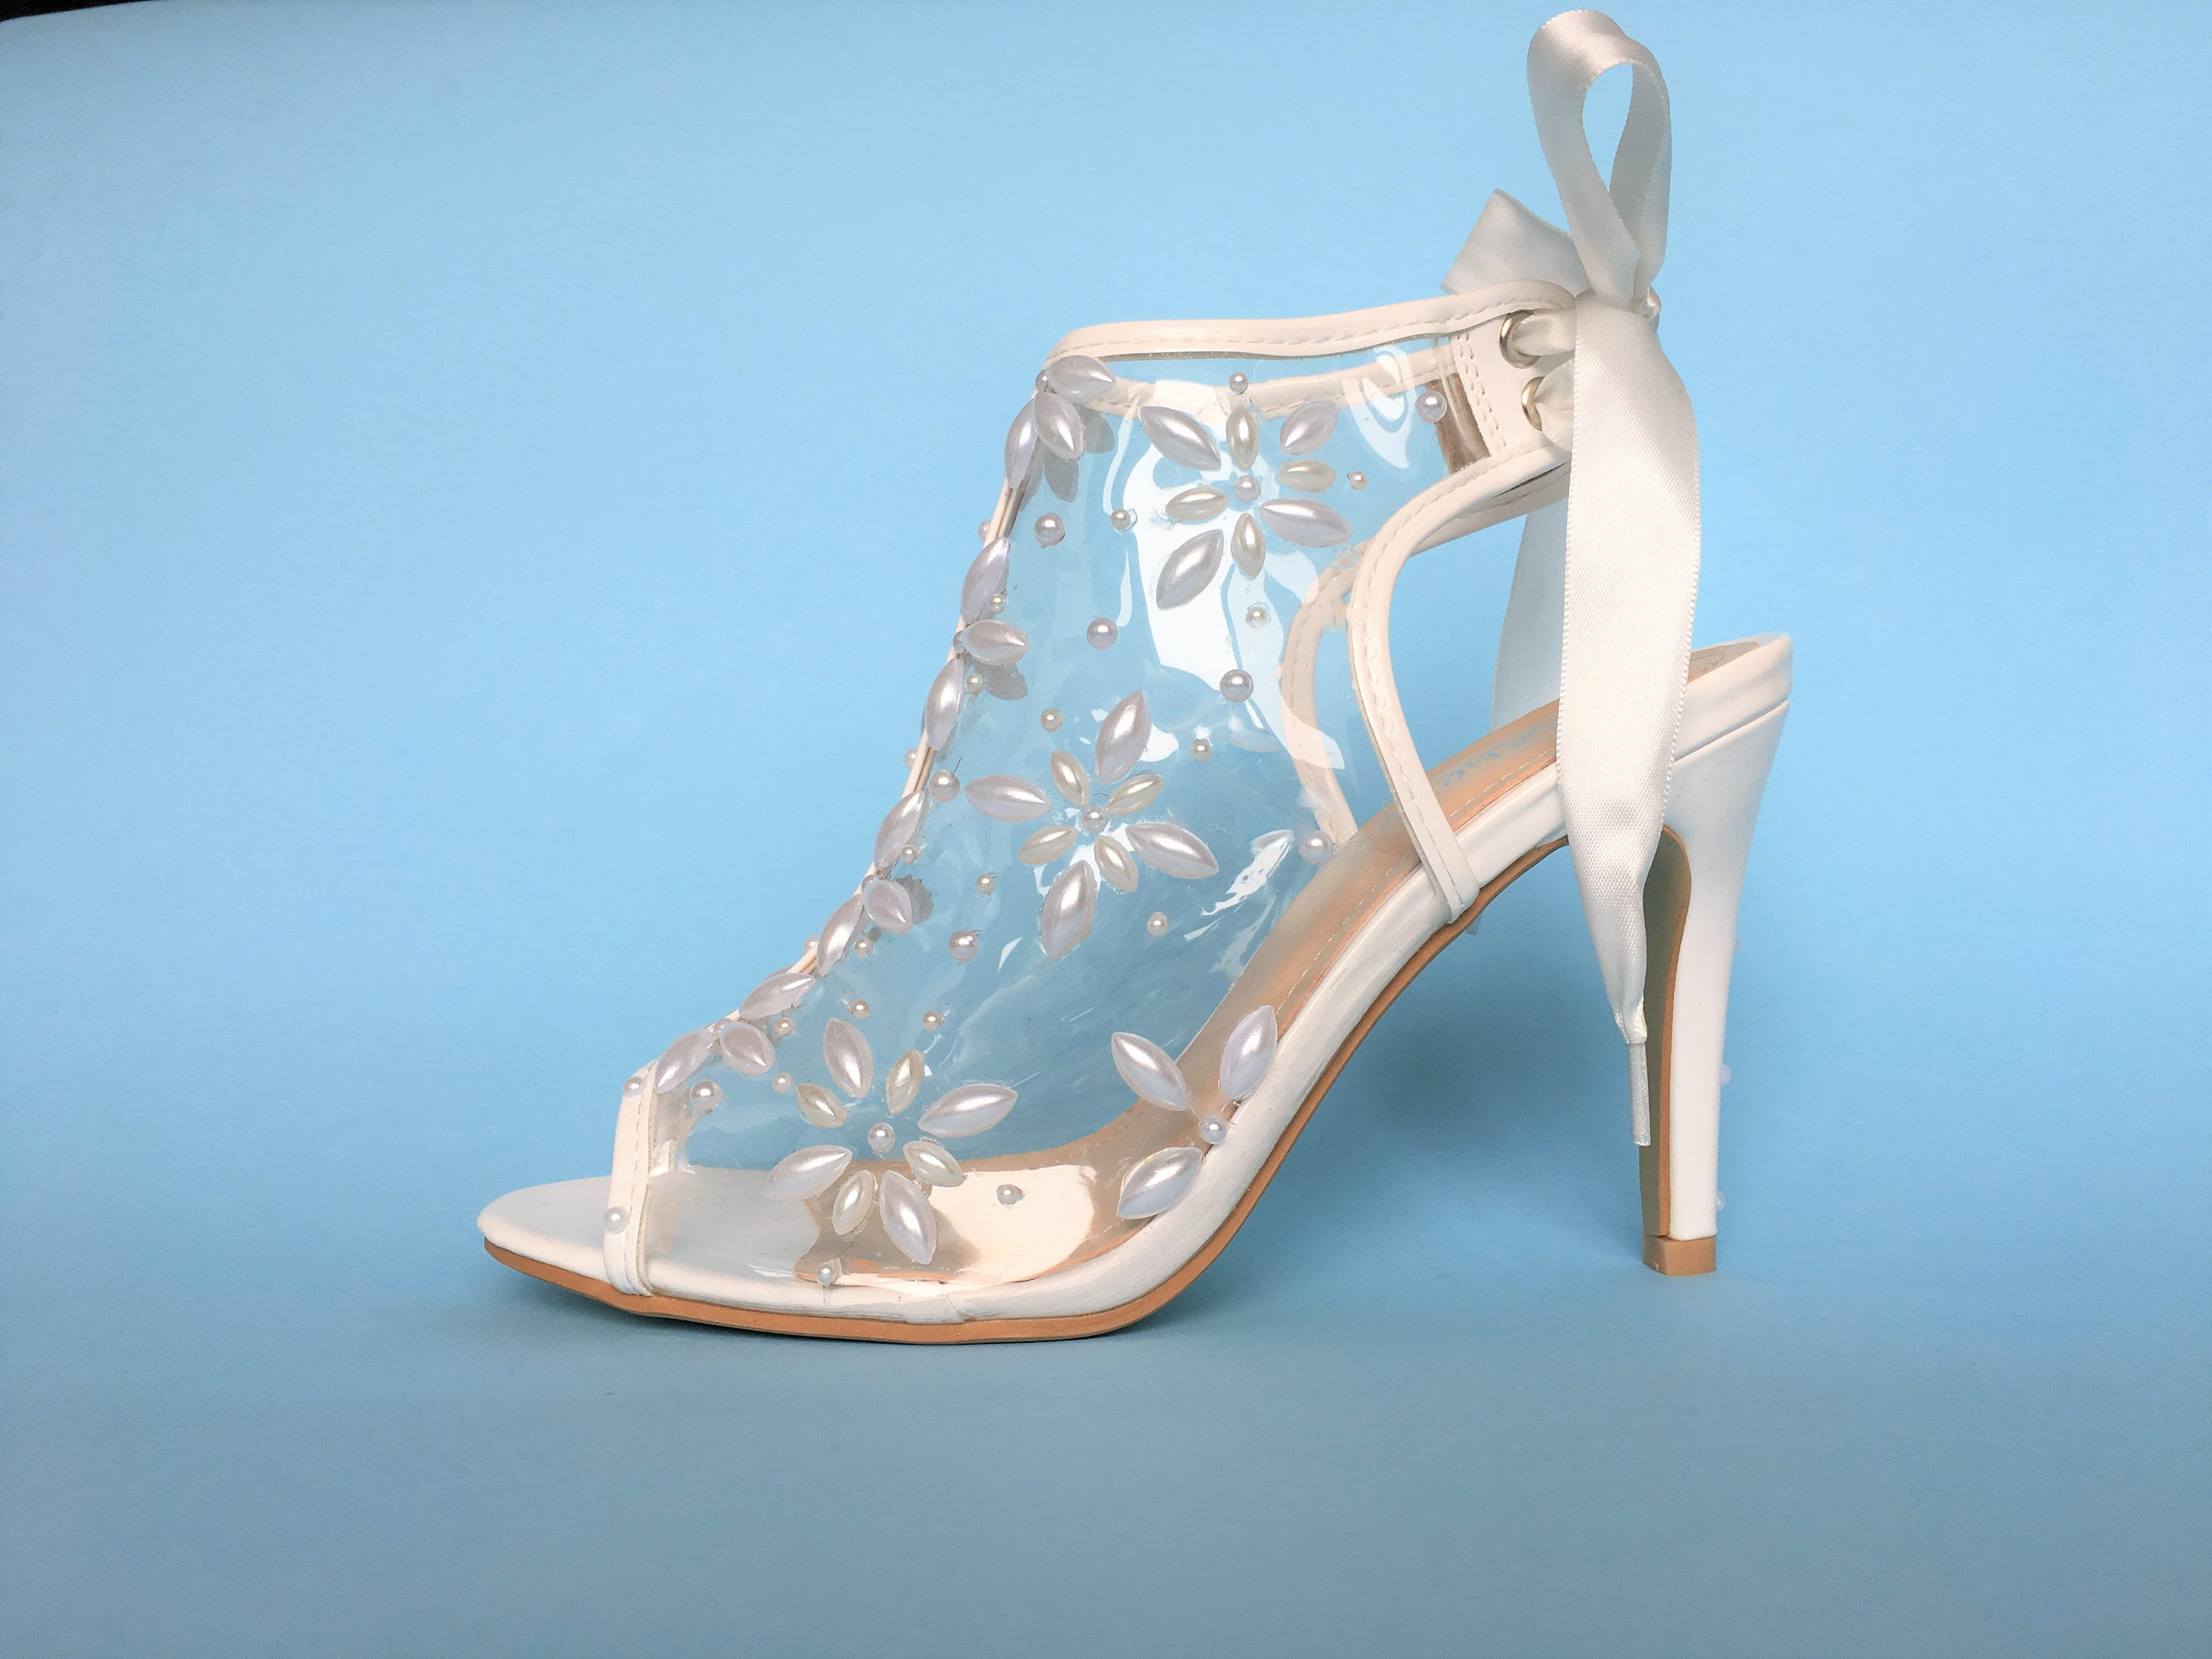 244b744789a Pearl Wedding Shoes, High Heels Wedding Shoes for Bride, White ...